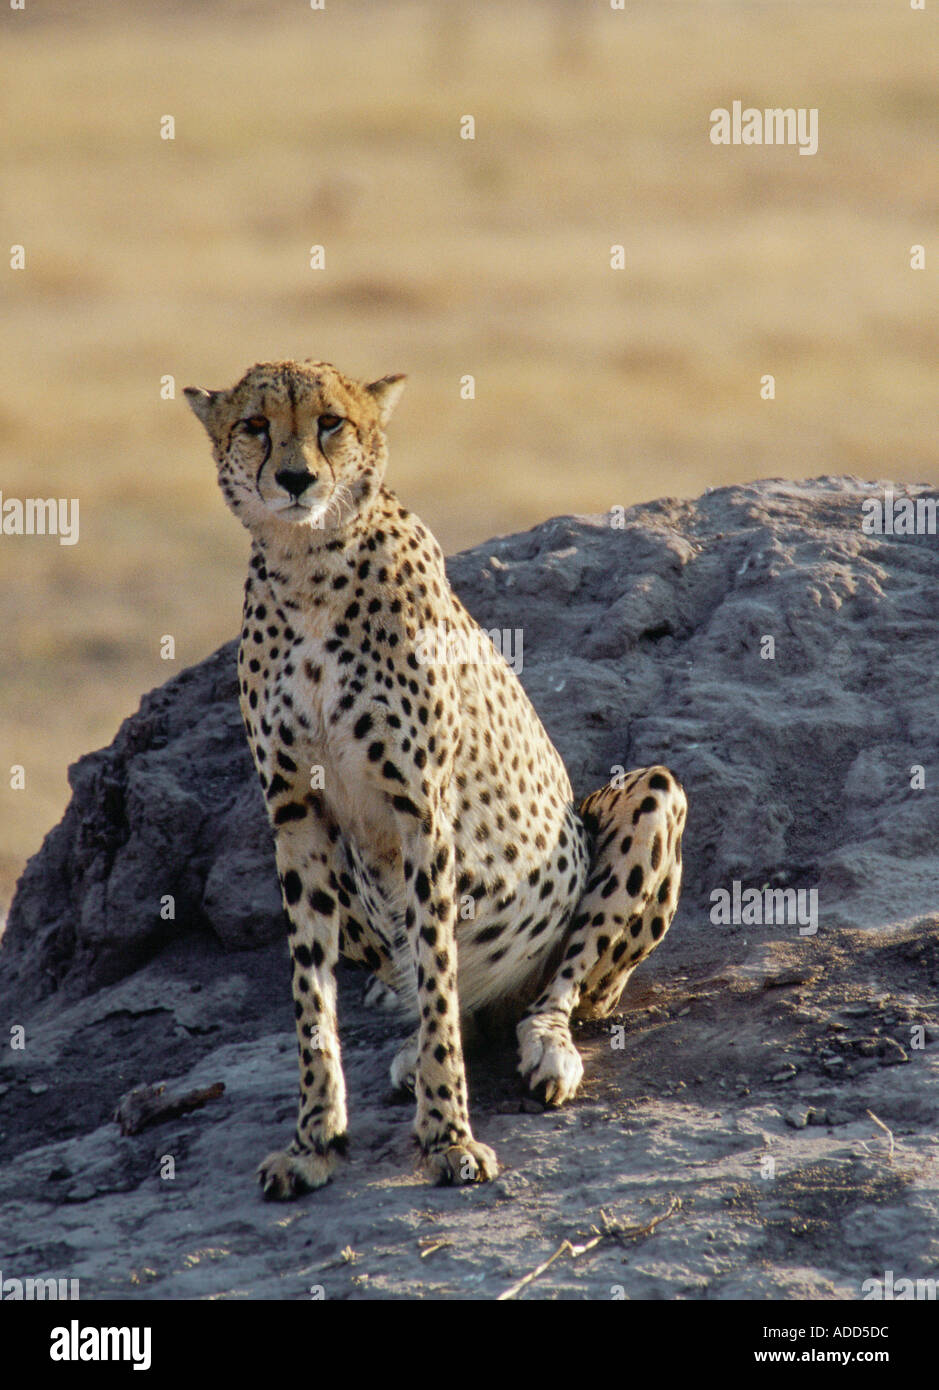 Cheetah using an old termite mound to watch for approaching prey in Moremi National Park Botswana Africa Stock Photo